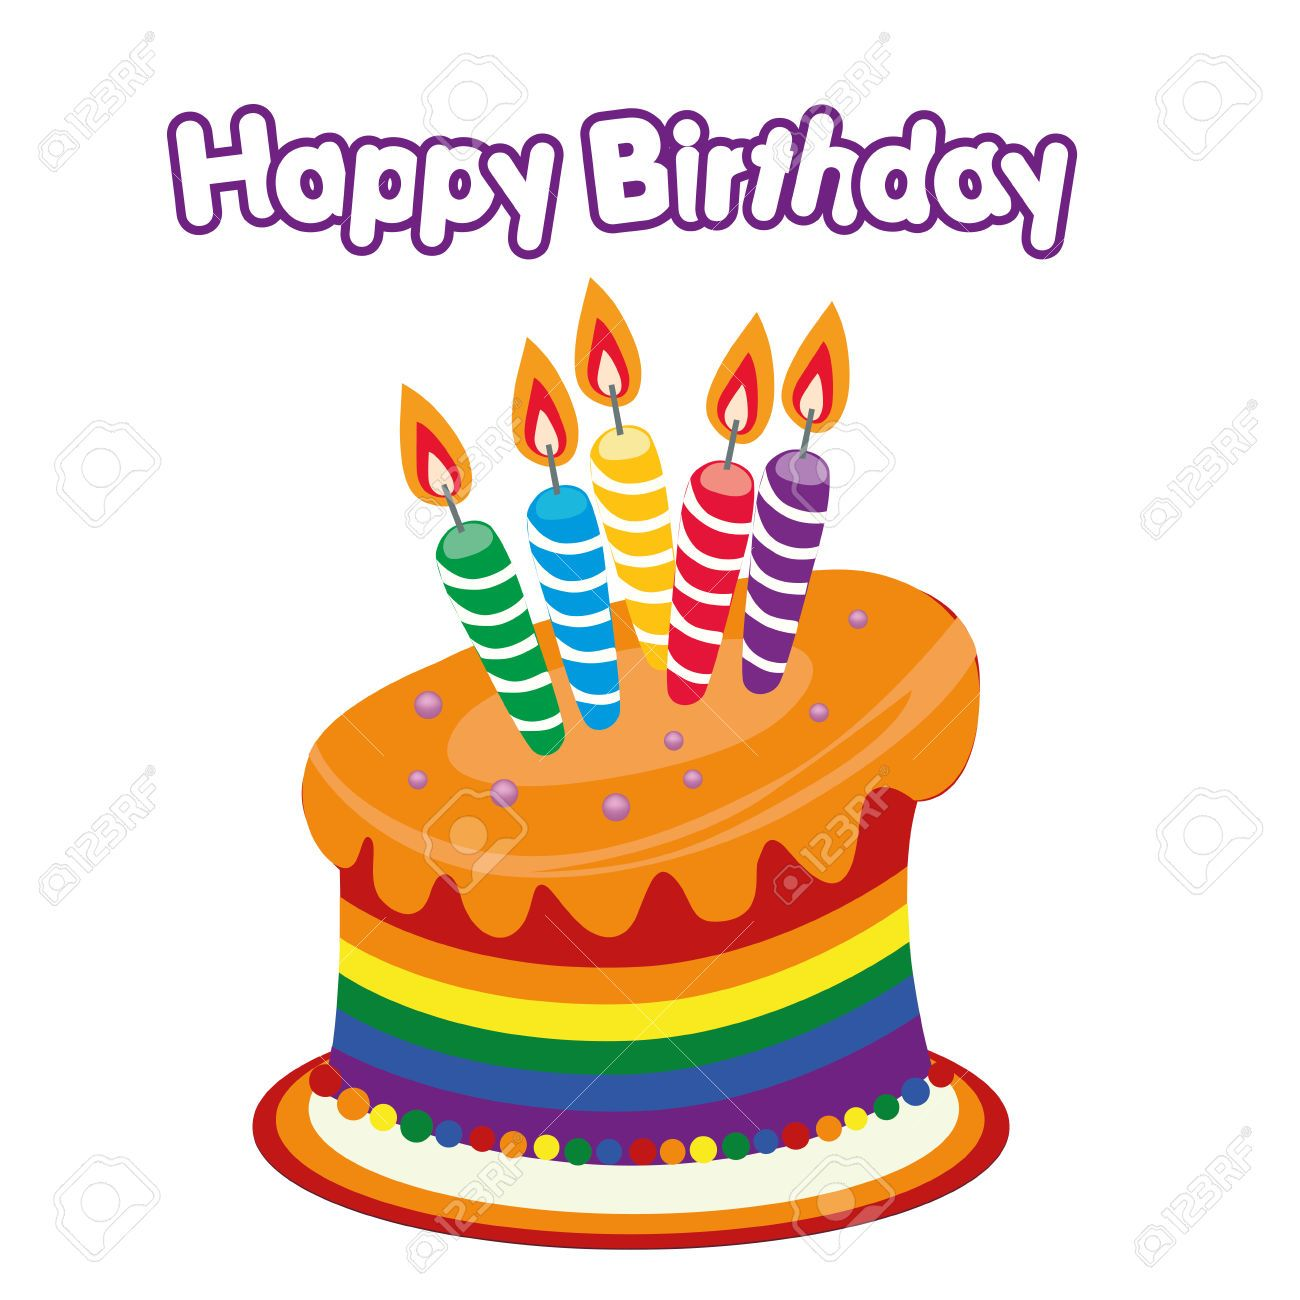 Happy Birthday Cake Clipart a Colored Happy Birthday Cake ...